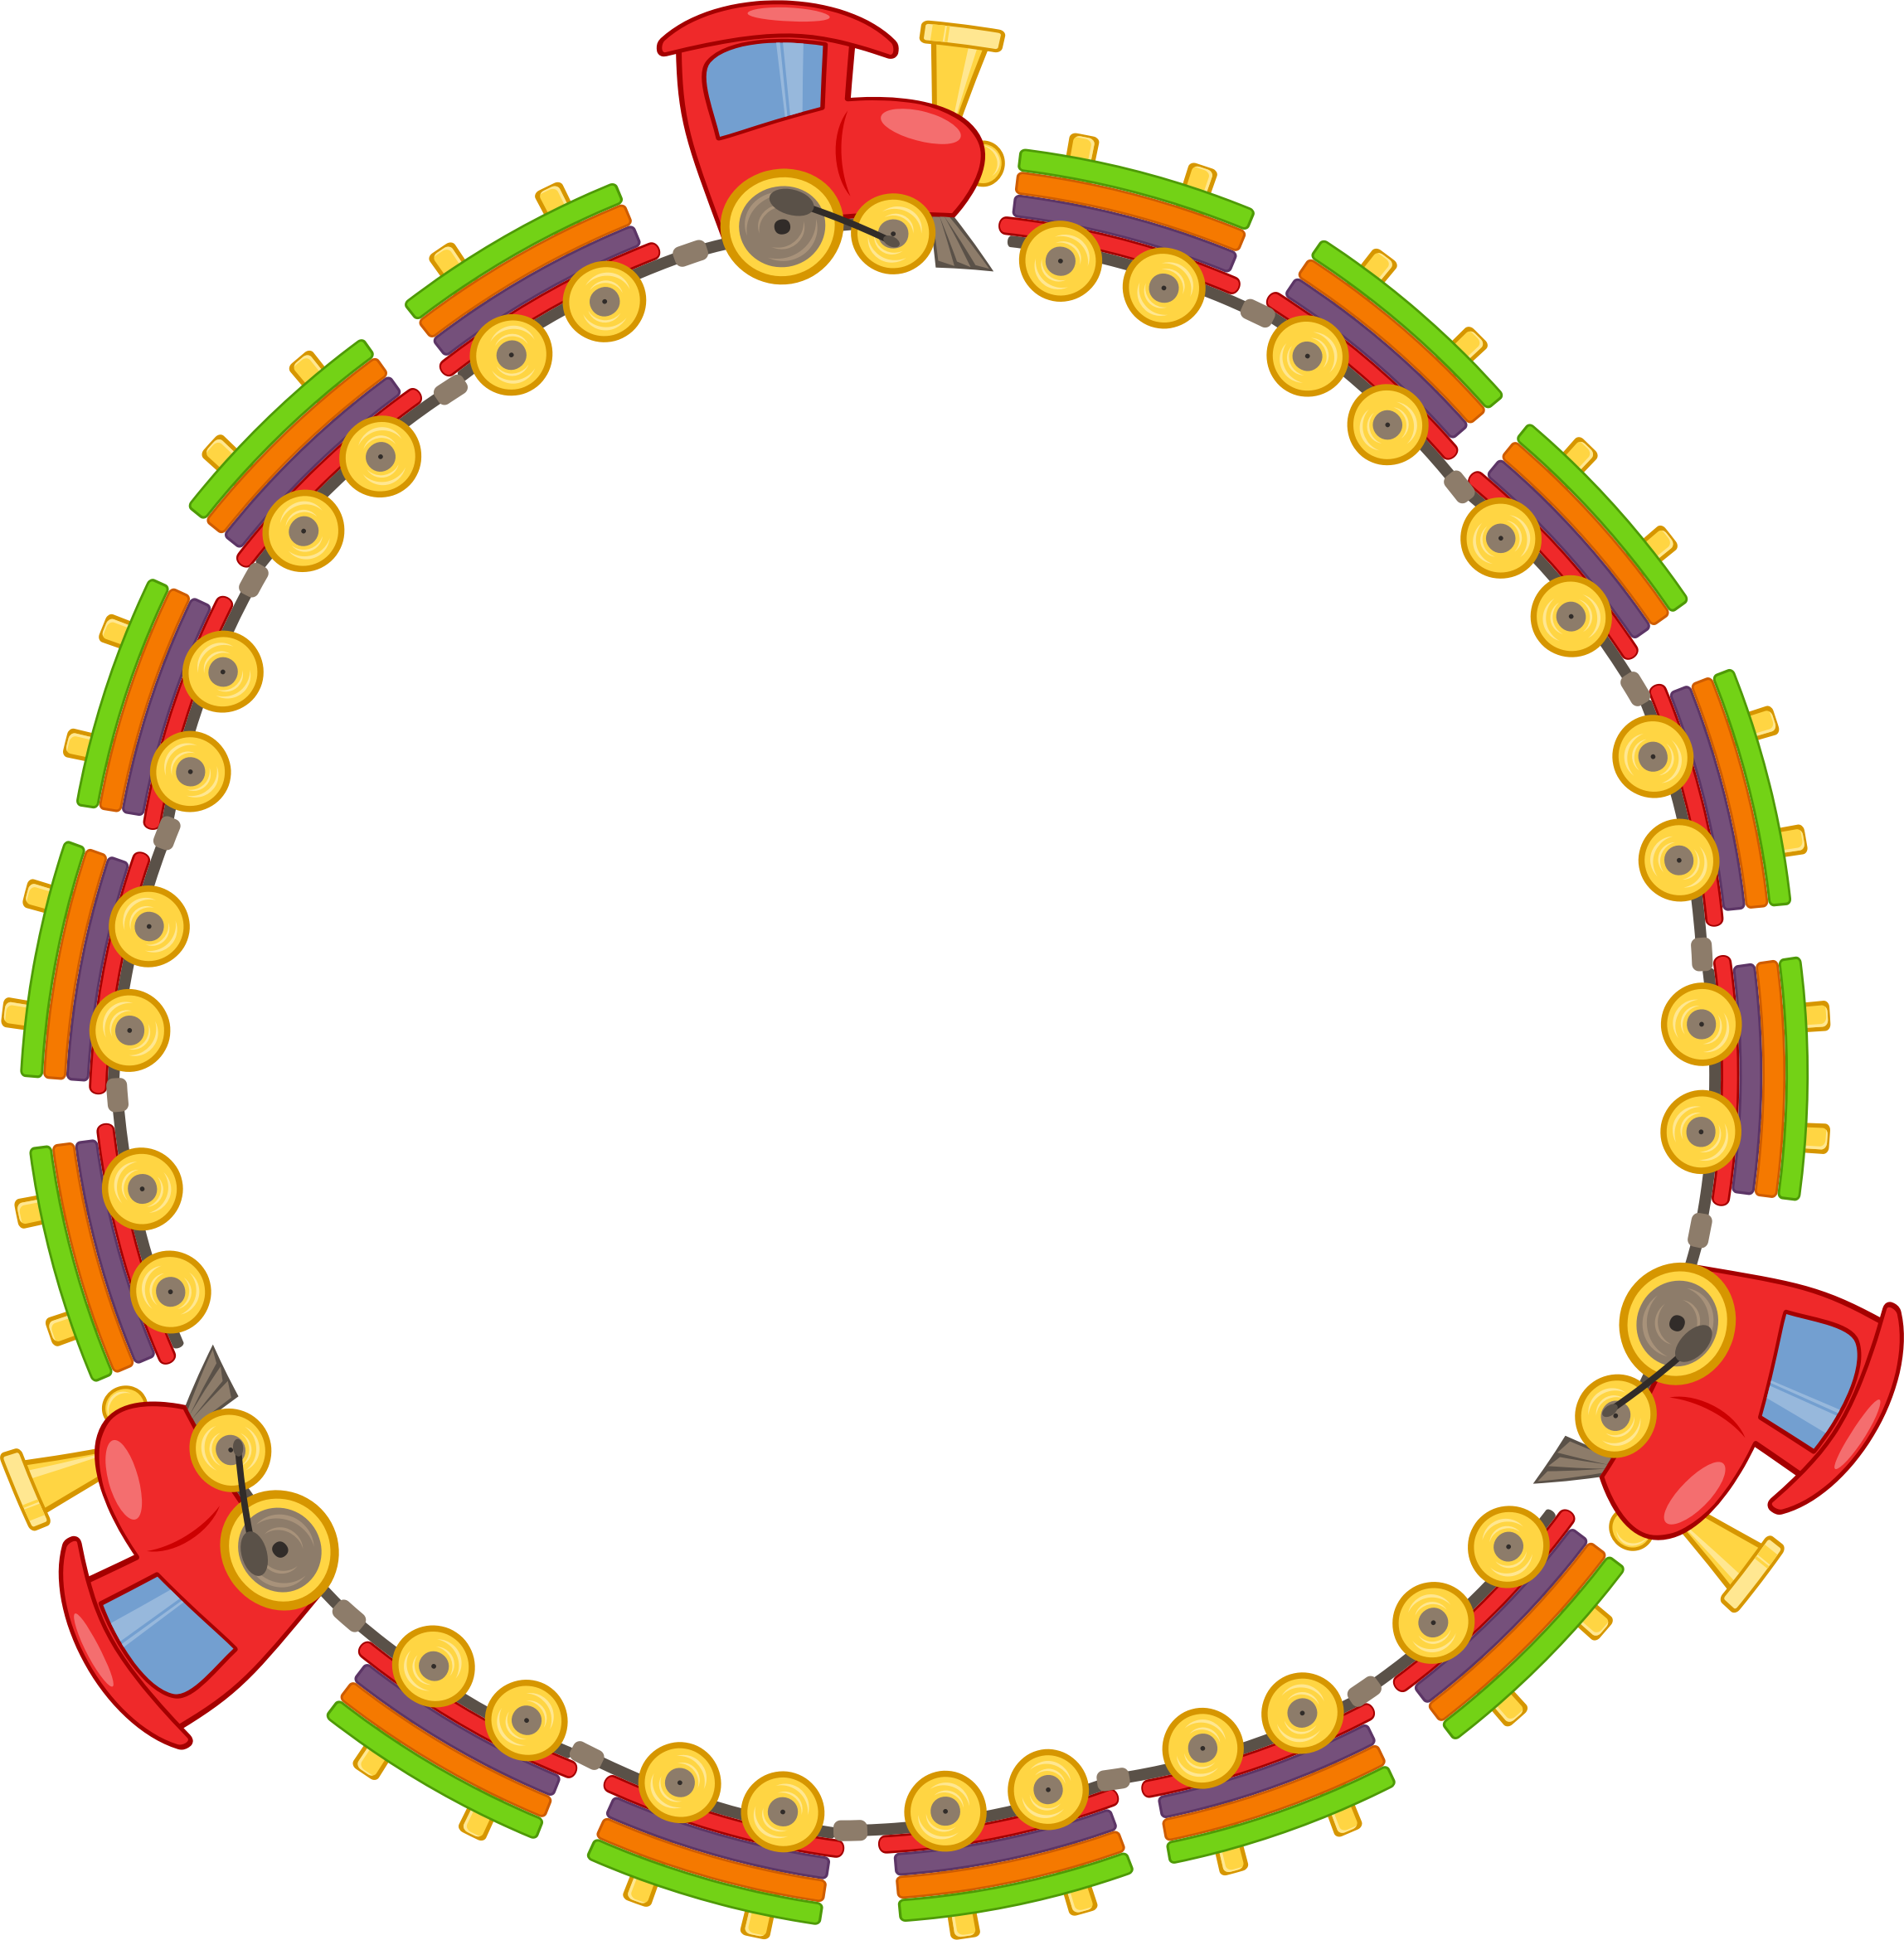 Frame clipart toy. Train big image png